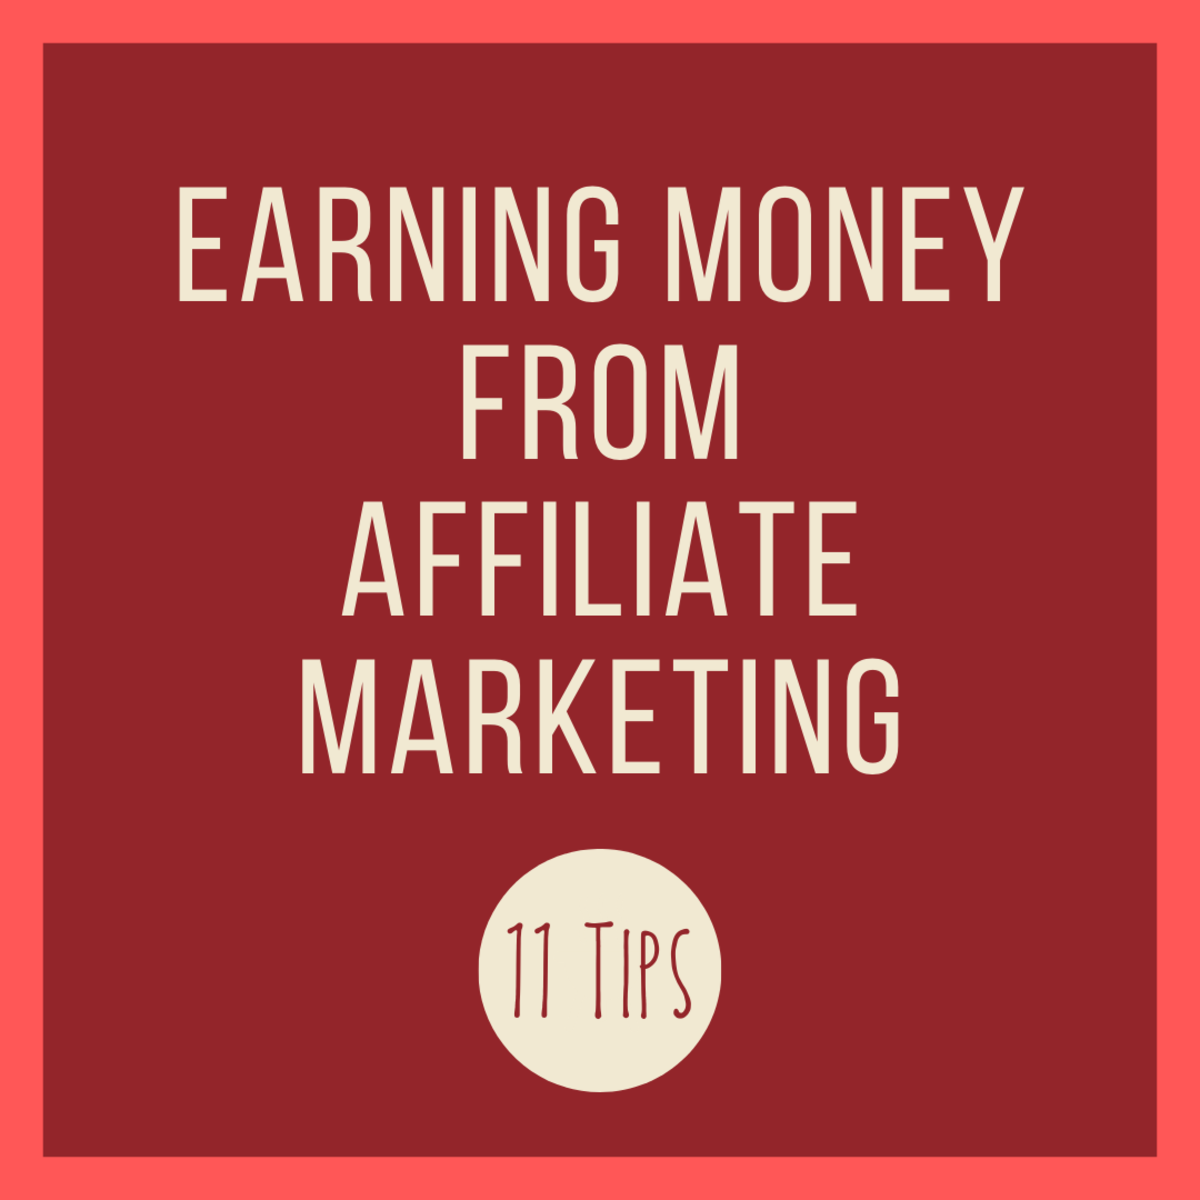 Get some advice on making money with affiliate marketing.